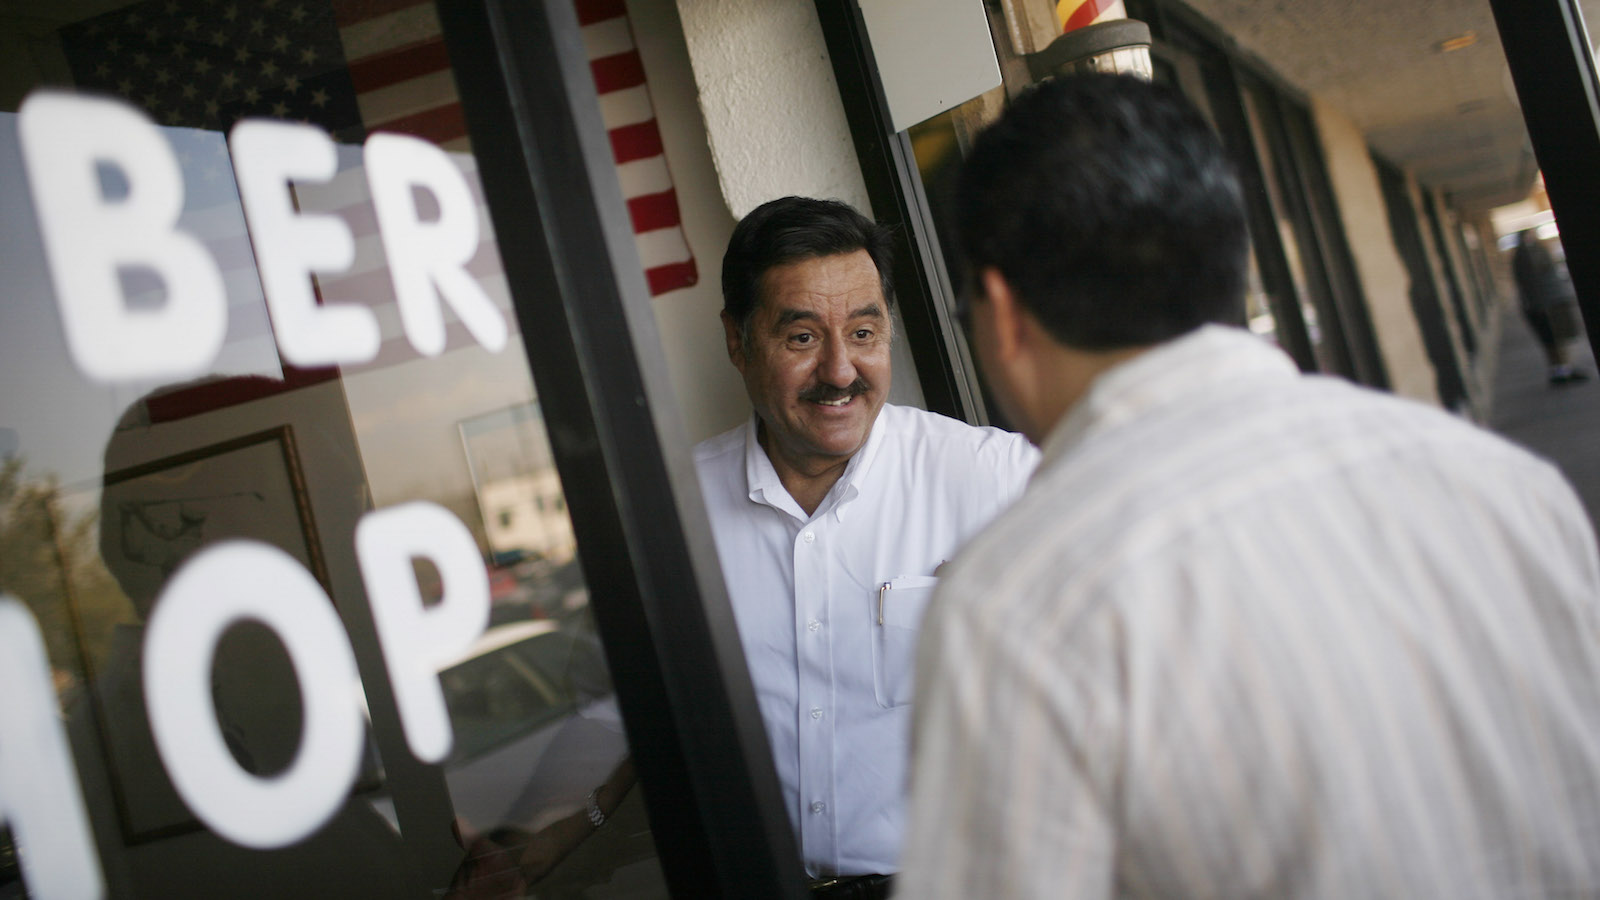 Xavier Rivas, a Republican activist working on Sen. John McCain's Nevada Leadership Team, visits a barbershop in Henderson, Nev., Friday, Sept. 26, 2008. The man who once risked his career on an immigration reform bill that was embraced by Hispanics is now struggling to win these same voters, and falling perilously below the level of support that helped lift President Bush to the White House. The candidate who won nearly 70 percent of Hispanic voters in his last bid for Senate in border-state Arizona is watching a first-term Illinois senator run away with those voters. (AP Photo/Jae C. Hong)